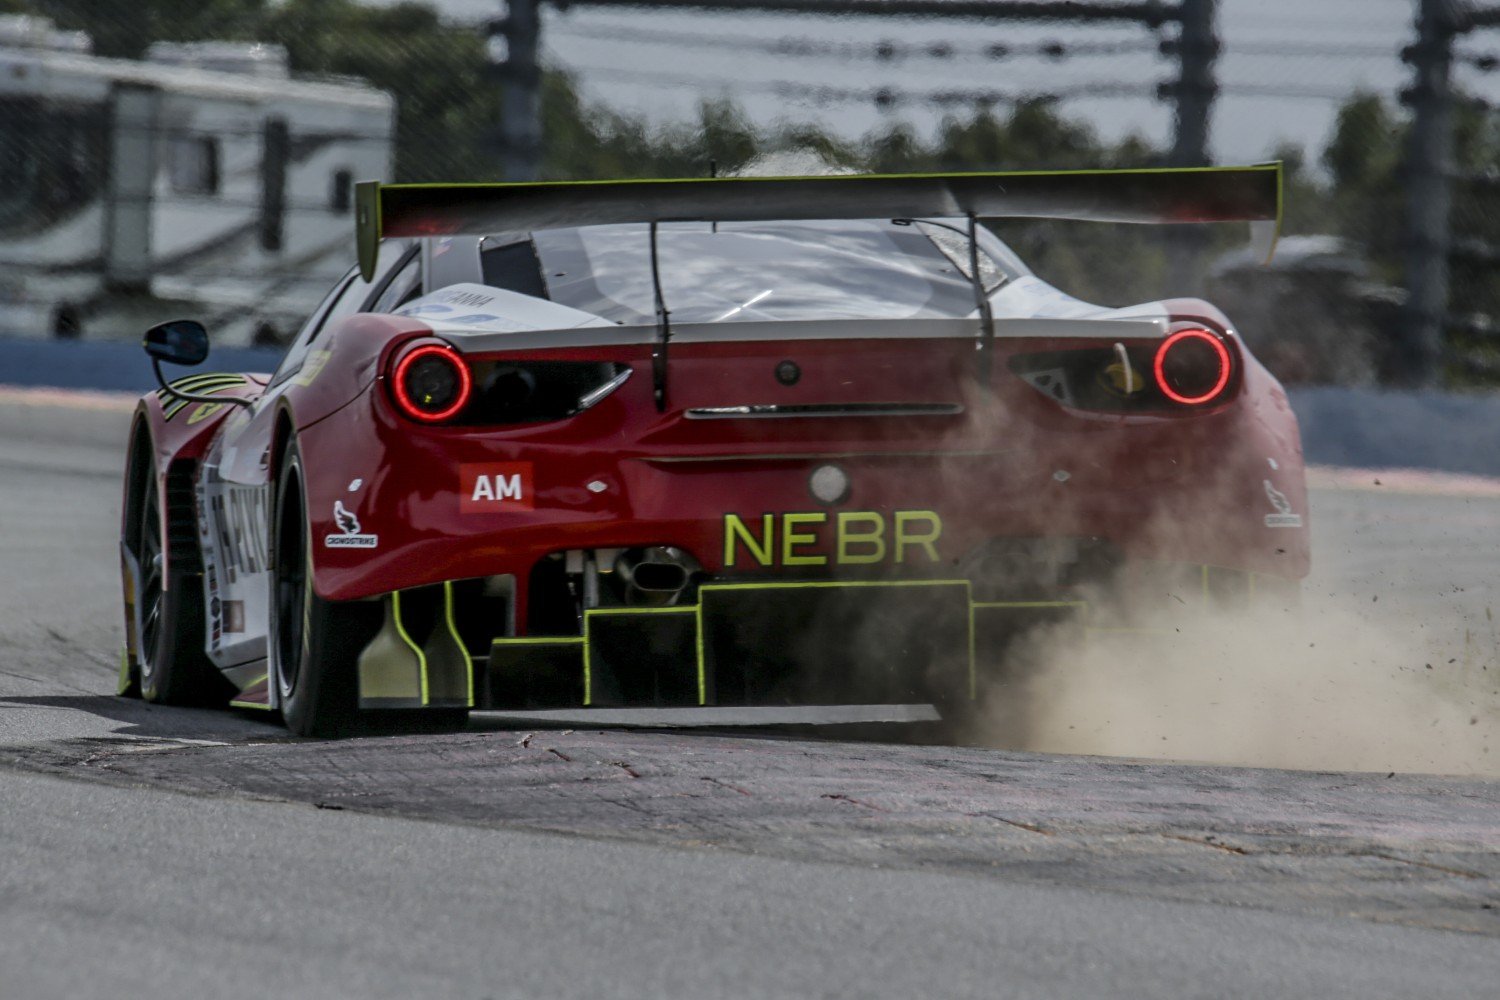 #19 Ferrari 488 GT3 of Christopher Cagnazzi and Anthony Lazzaro, One11 Competition, Watkins Glen World Challenge America, Watkins Glen NY  | Brian Cleary/SRO